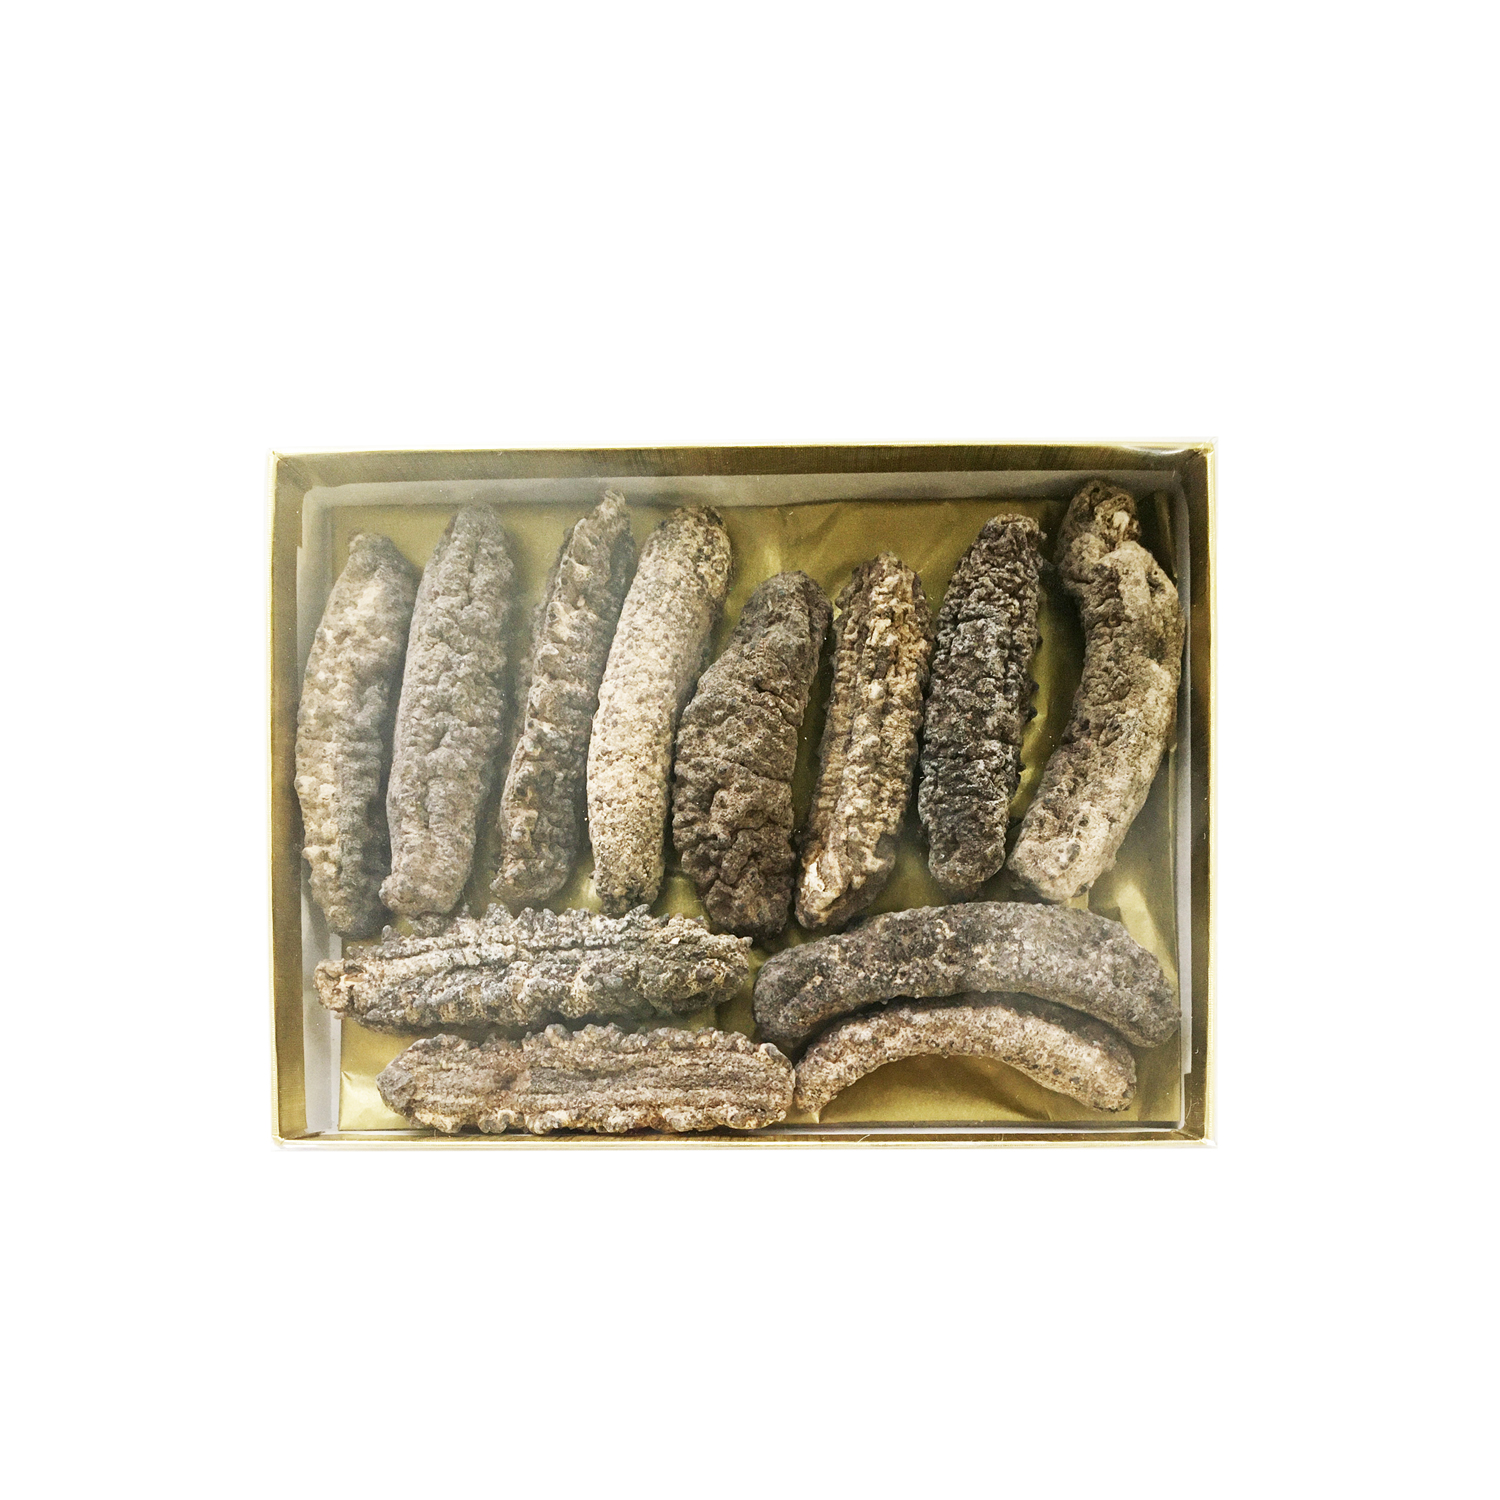 Dried Wild Sea Cucumber from the Caribbean, Medium Size 200g